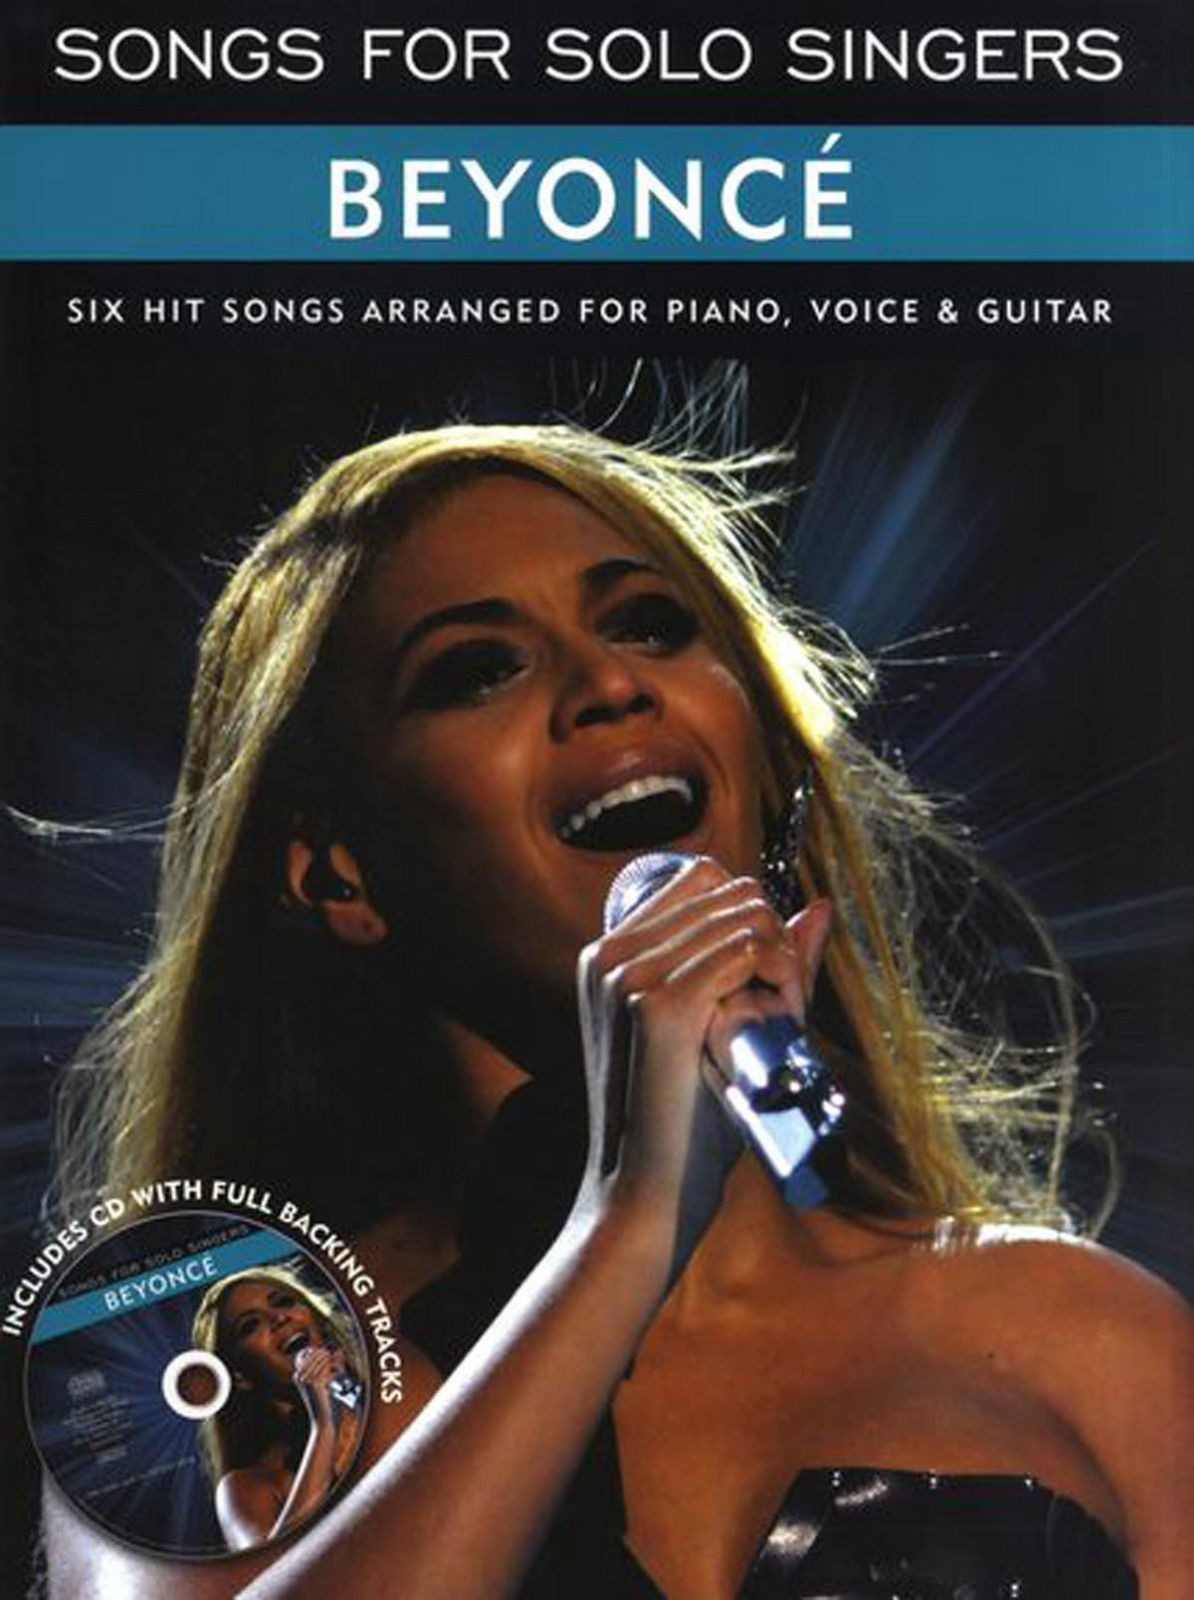 Songs For Solo Singers Beyonce Book Singalong CD B29